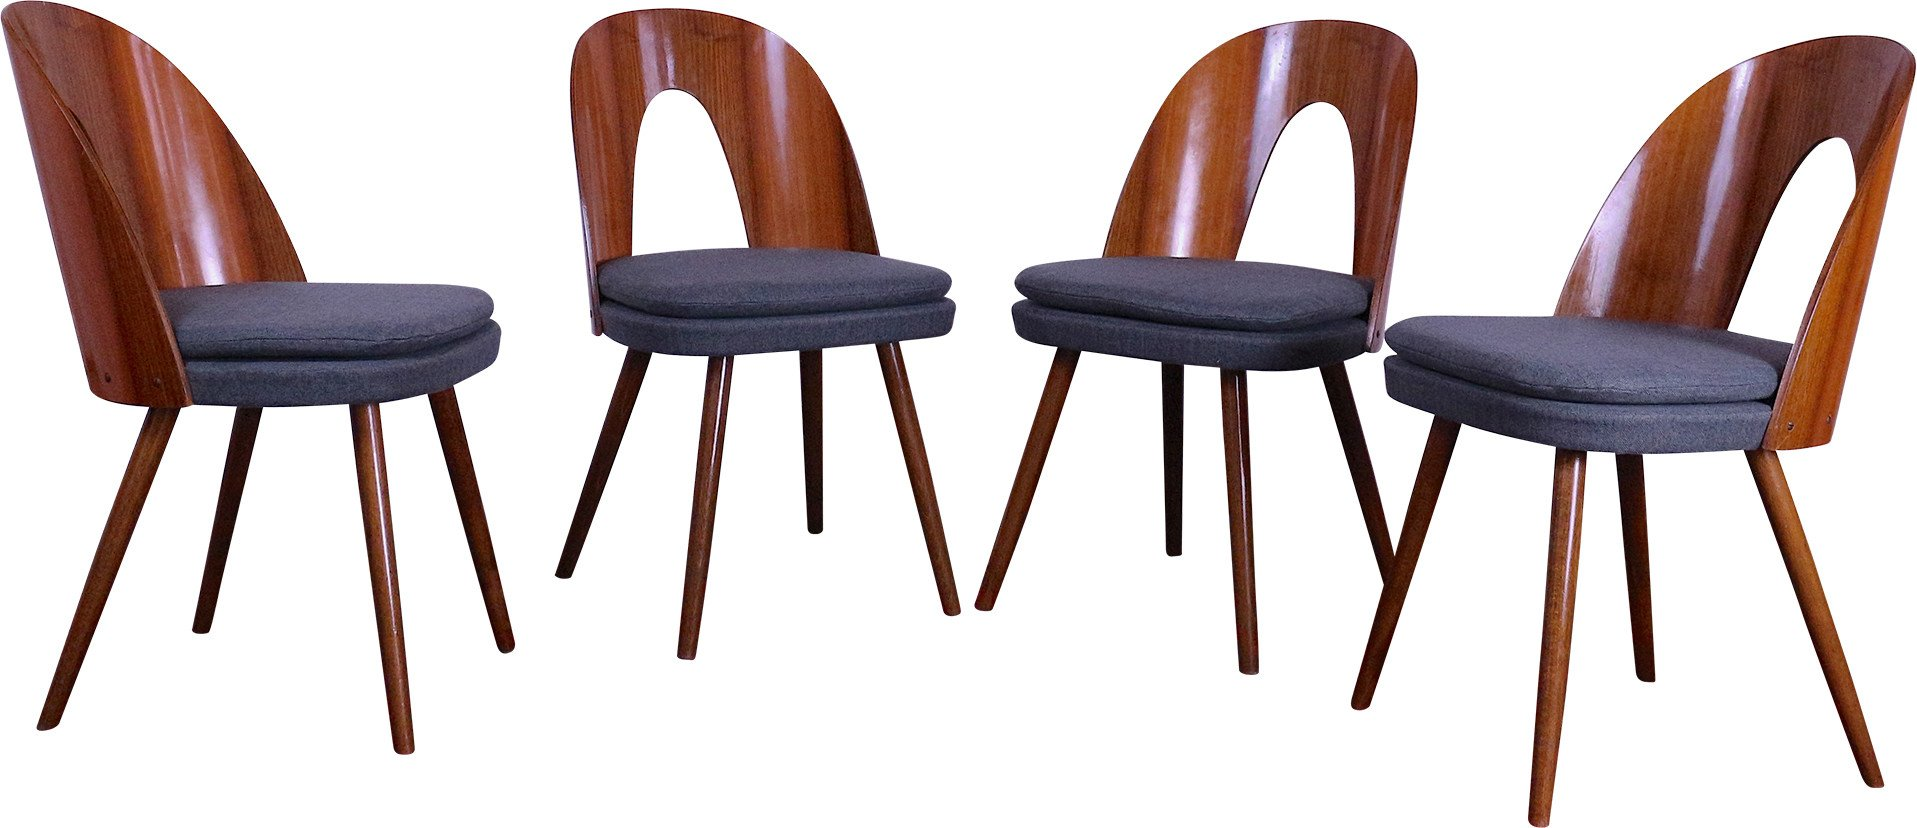 Set of Four Chairs by A. Suman for MIER, Czechoslovakia, 1960s